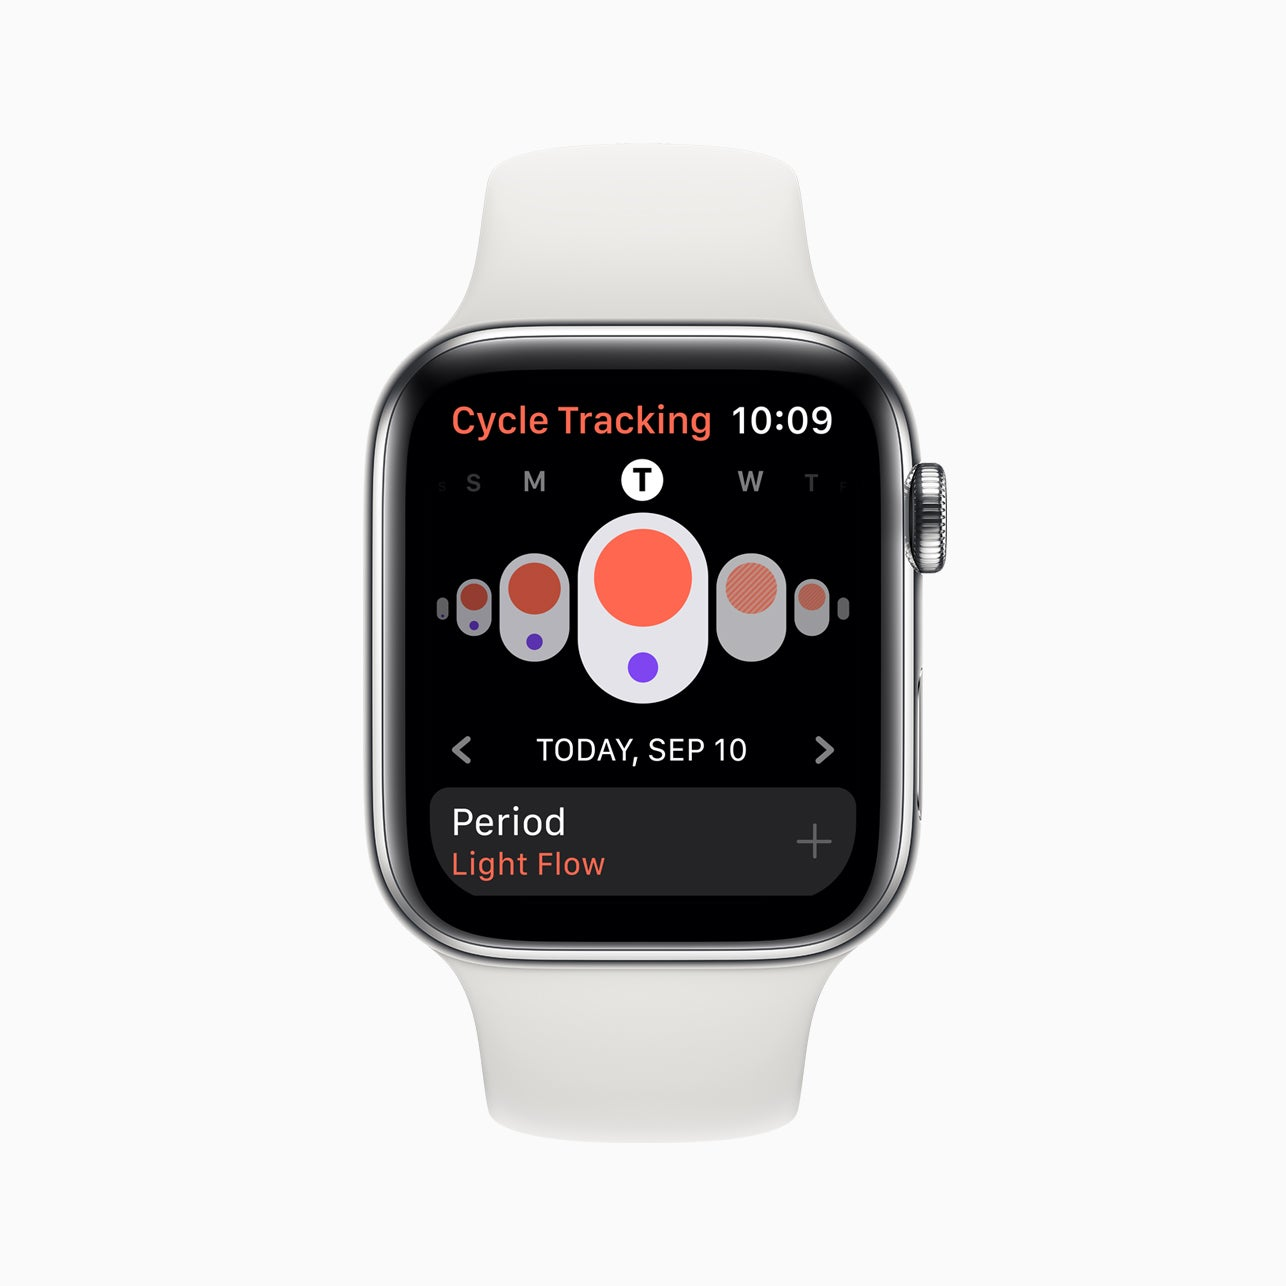 Apple Watch Series 5 Review New Features Bands Price